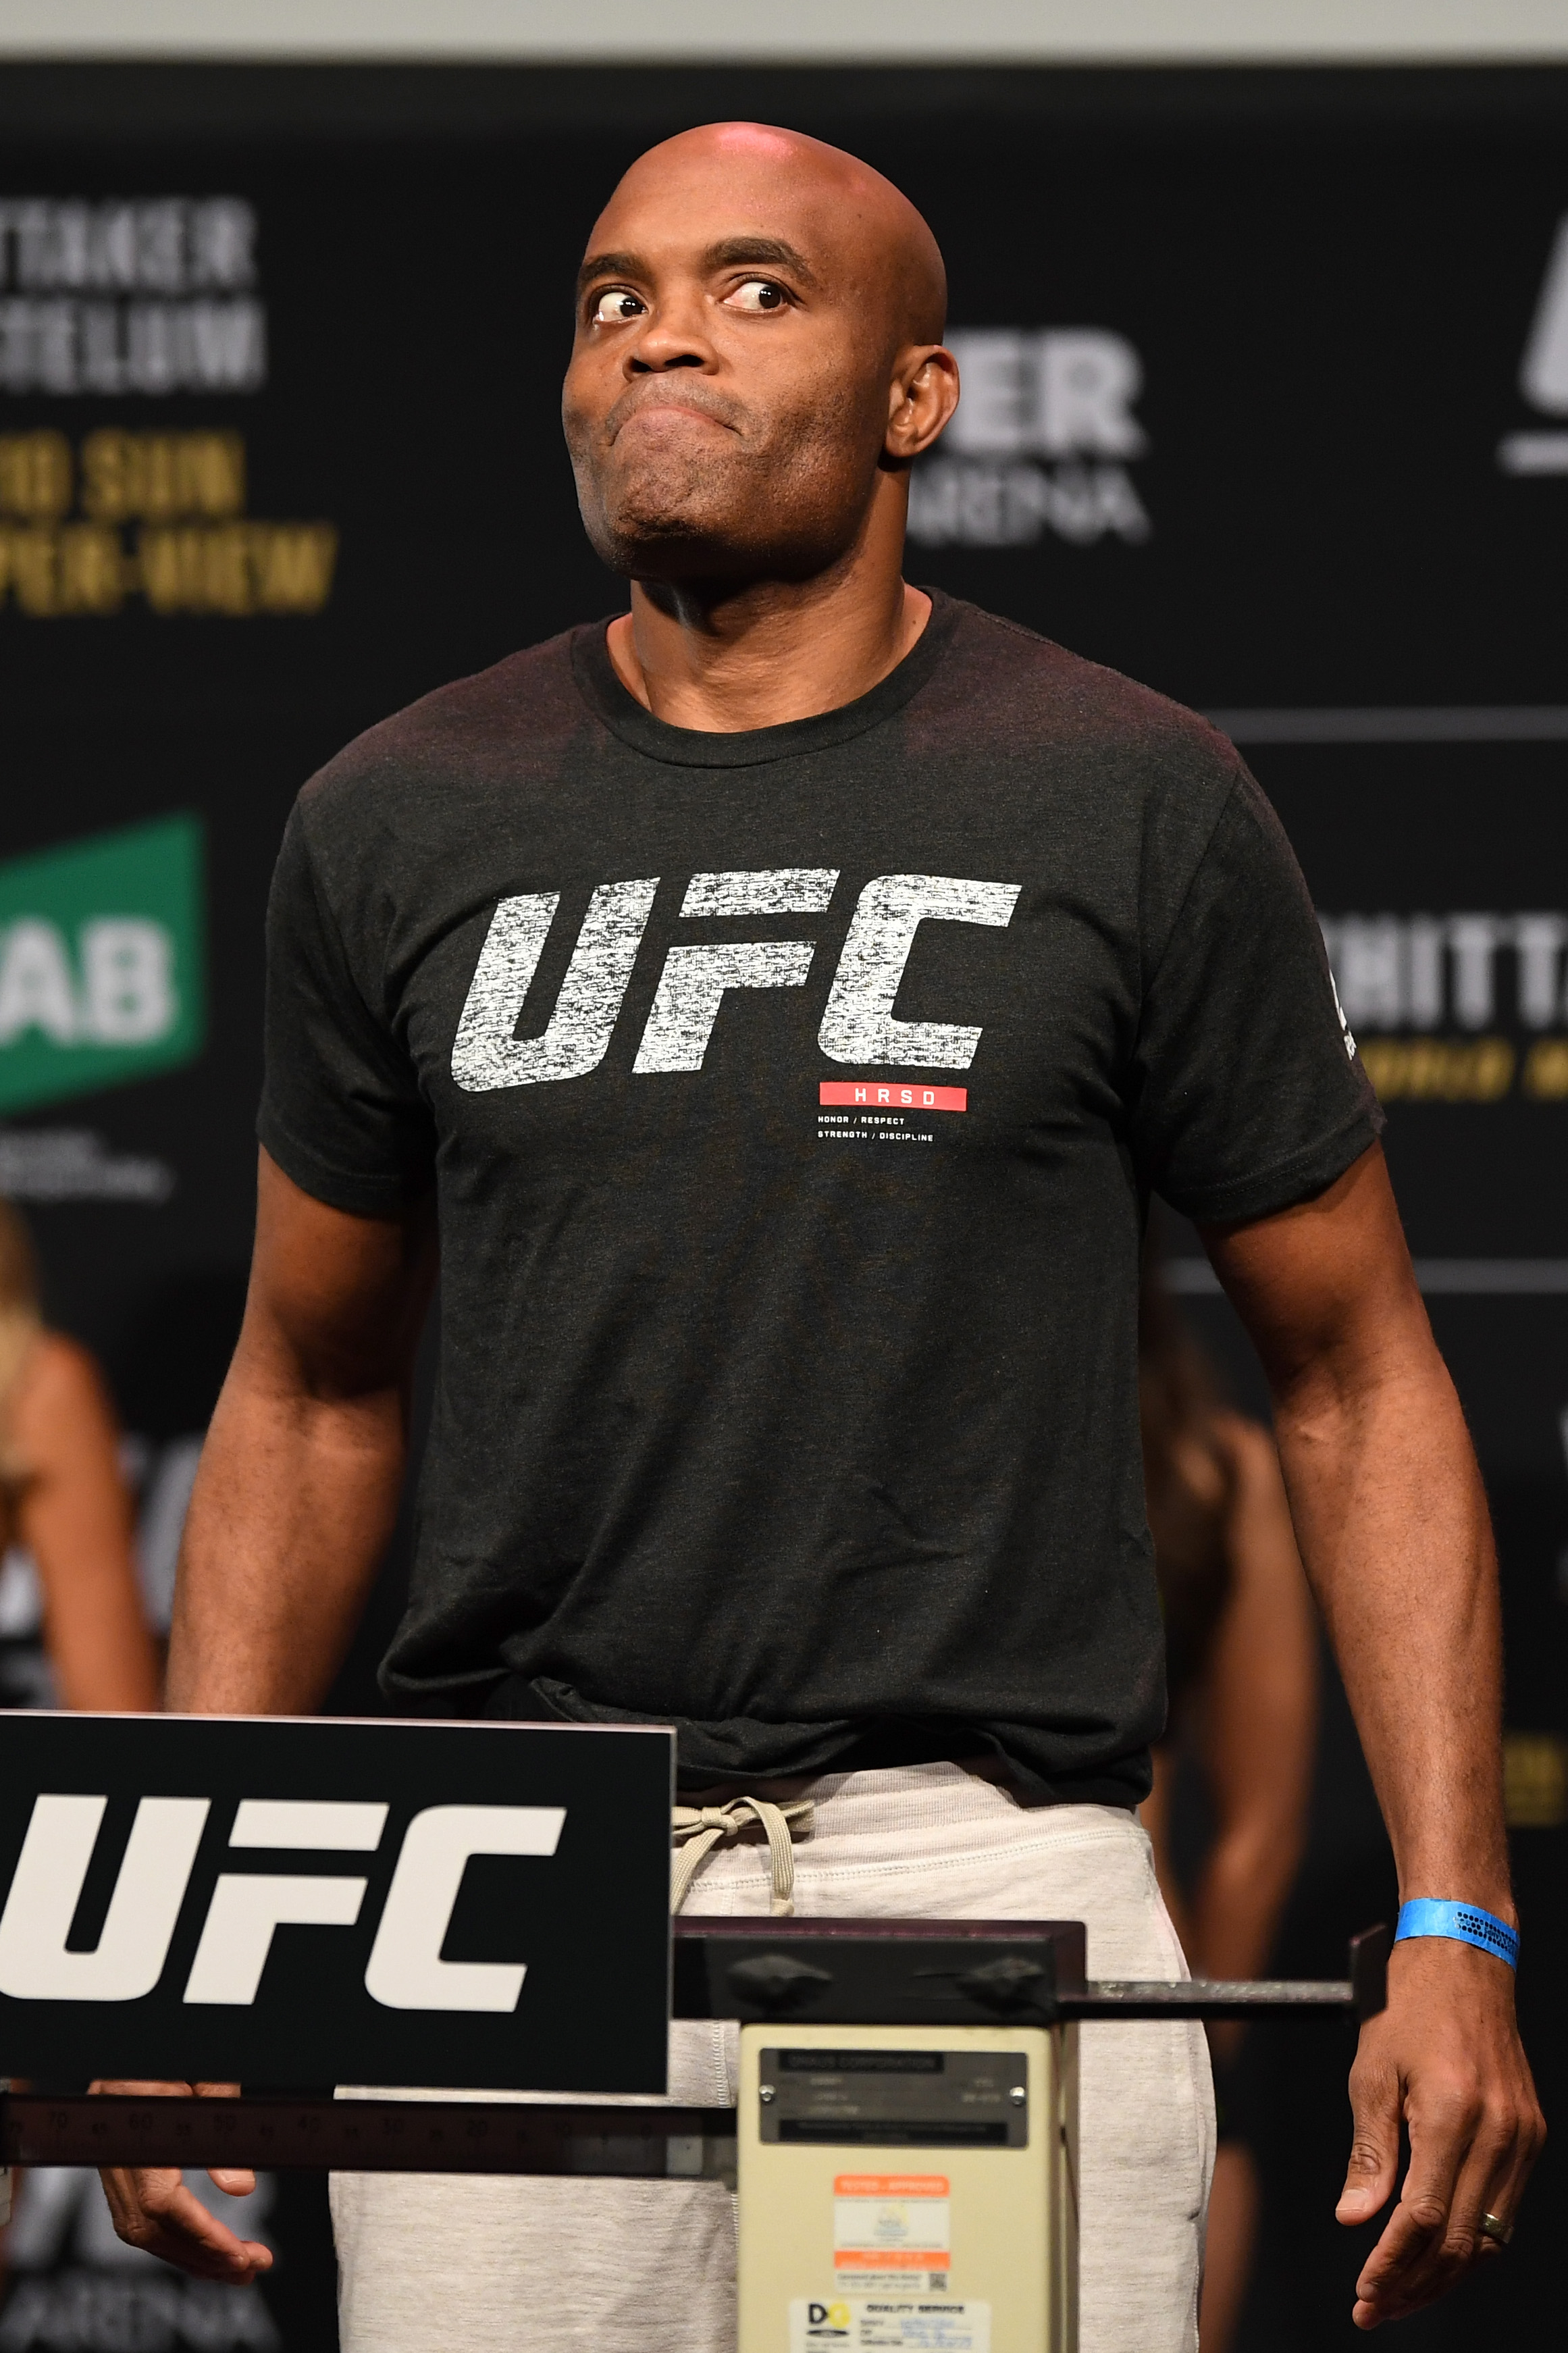 Anderson Silva quickly flipped to being the betting favorite over Logan Paul in potential boxing match